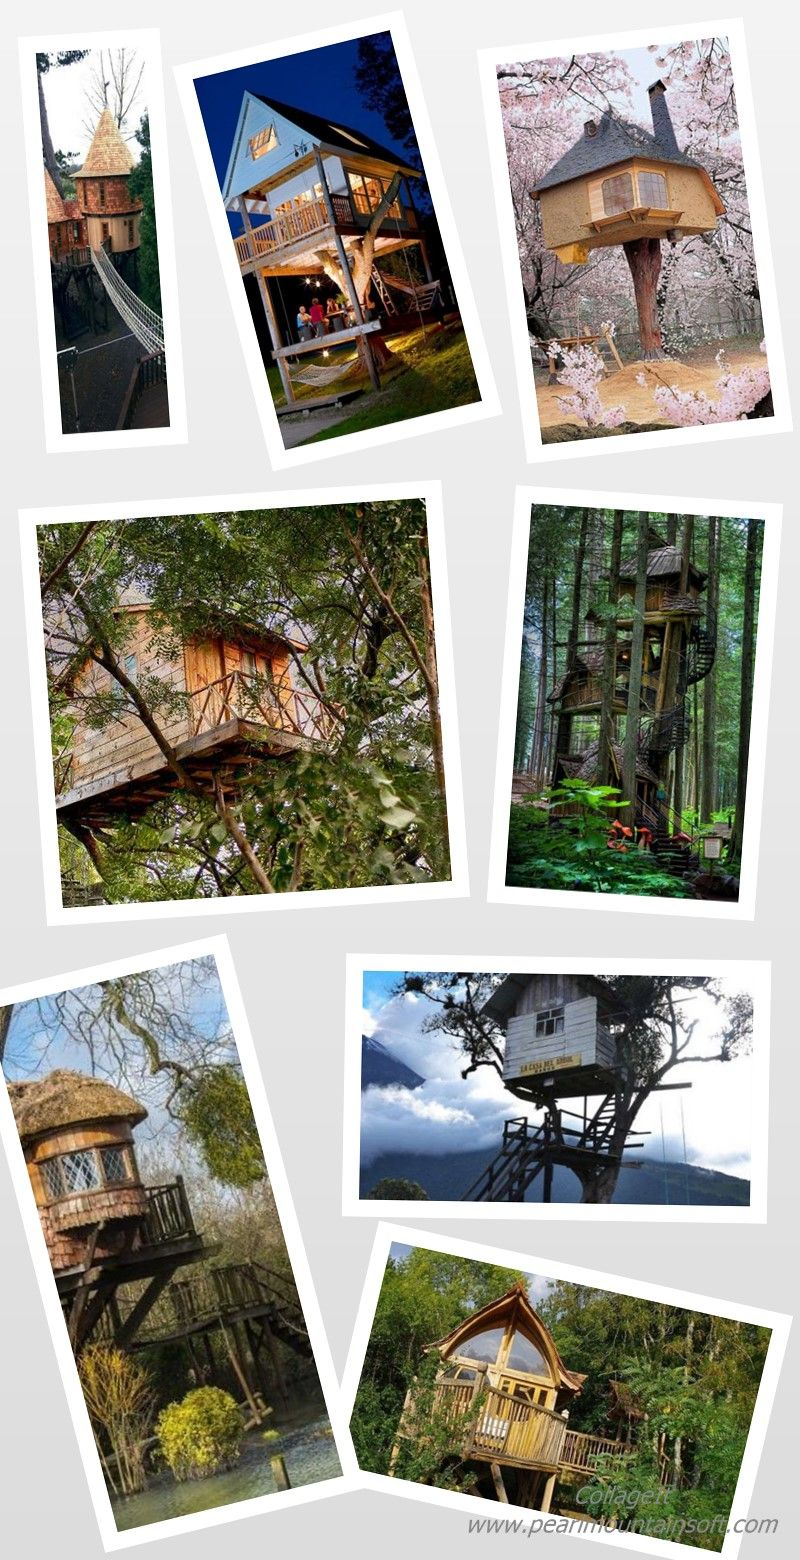 Discover a dwelling within the birds and branches with the top 60 best treehouse ideas. Explore cool wooden wonders and unique backyard designs. #treehousePlayground #treehouseAesthetic #treehouseBedroom #treehouseAccessories #treehouseBridge #treehouseIllustration #treehouseArt #treehouseCool #treehouseArchitecture #treehouseVillage #treehouseMagic #treehouseResort #treehouseJungle #treehouseRomantic #treehouseSketch #treehouseCastle